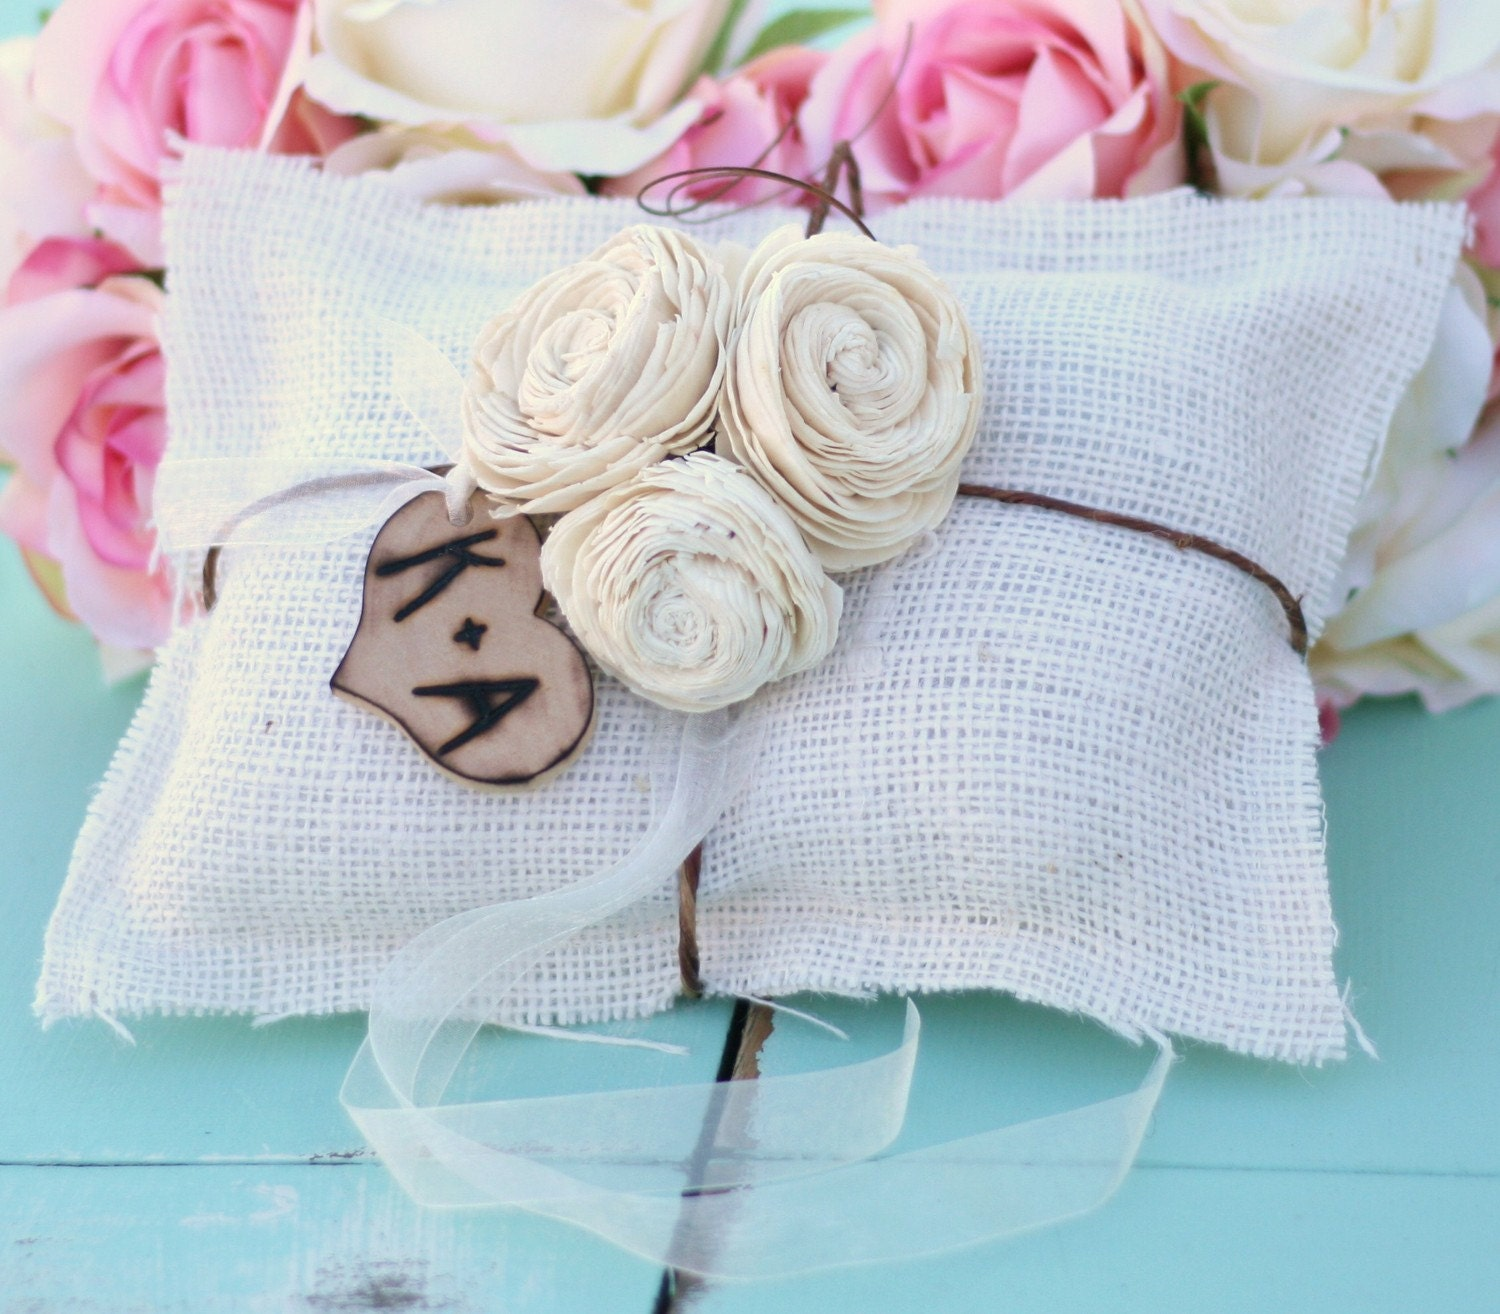 Vintage Antique Style Paper Roses Rustic Spring Summer Woodland Wedding Shabby Chic Burlap Ring Bearer Pillow With Personalized Engraved Monogrammed Wood Heart Charm